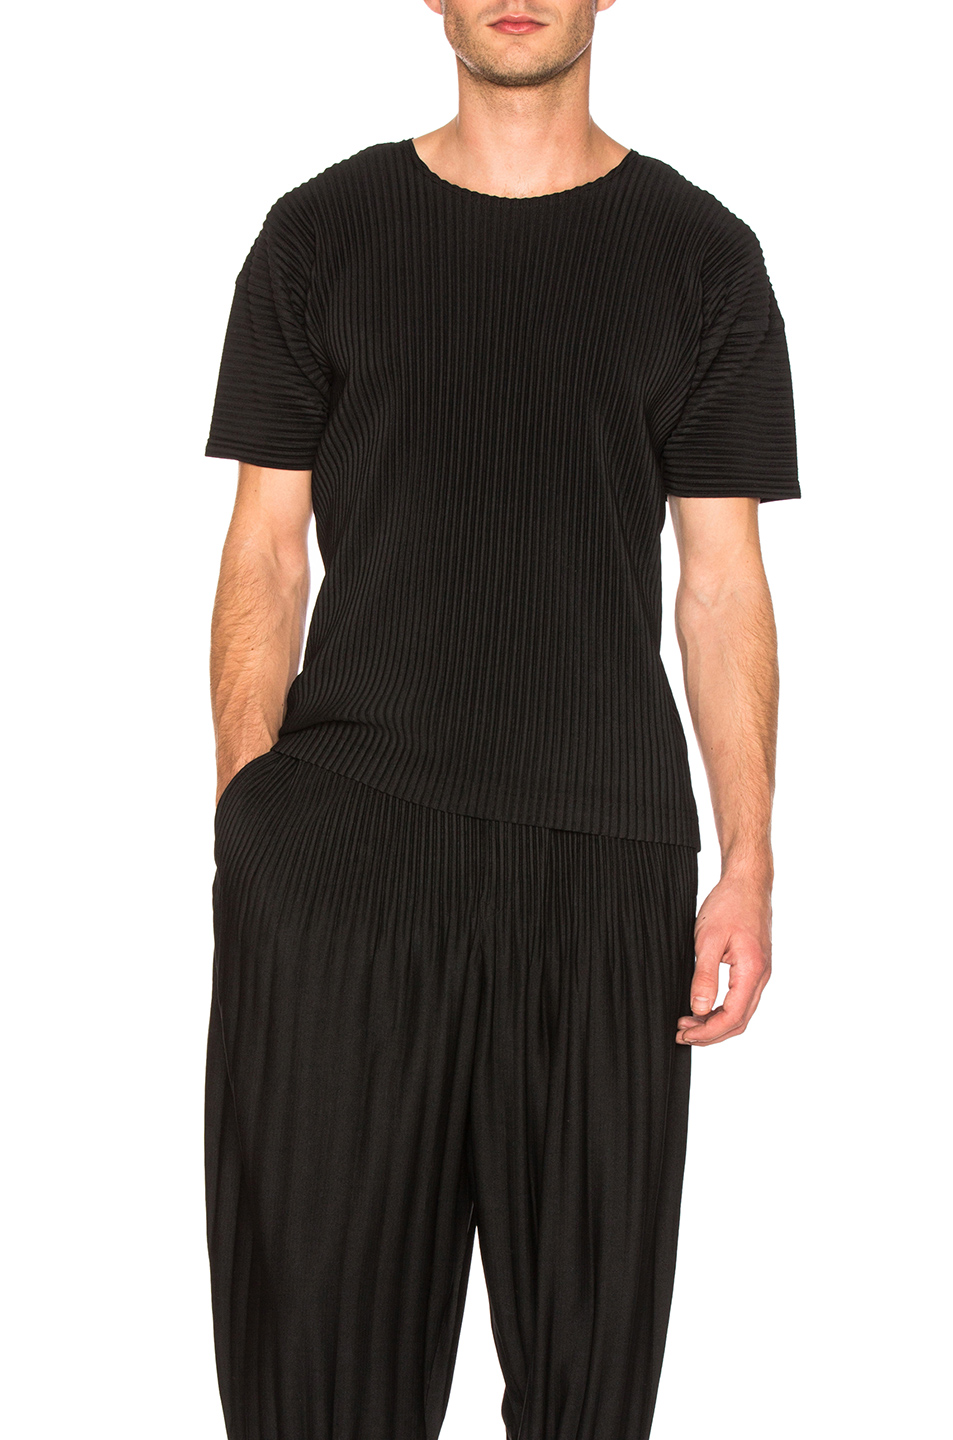 Issey Miyake Homme Plisse Basic Short Sleeve Shirt in Black